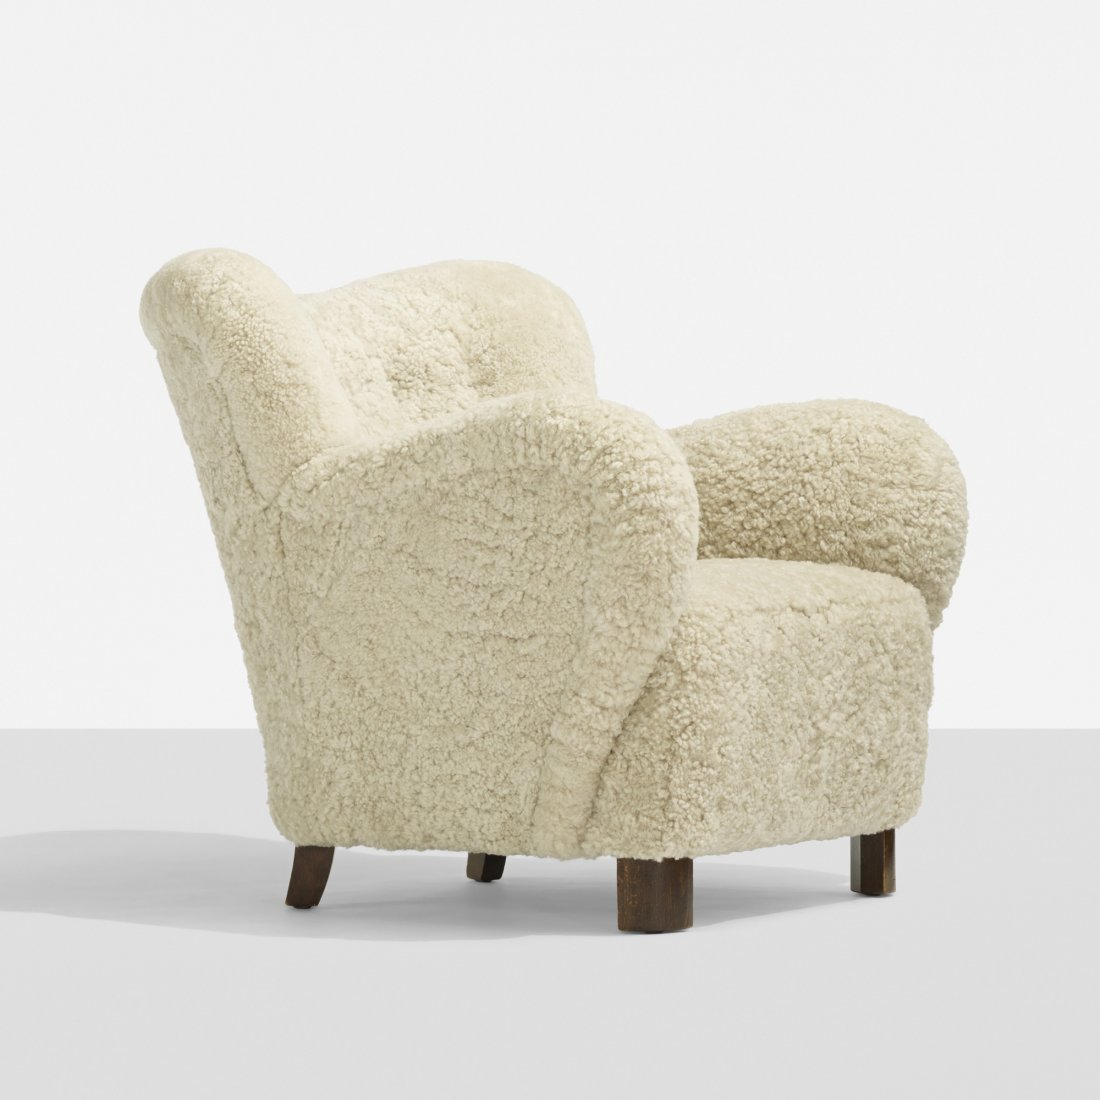 Flemming Lassen, attribution lounge chair